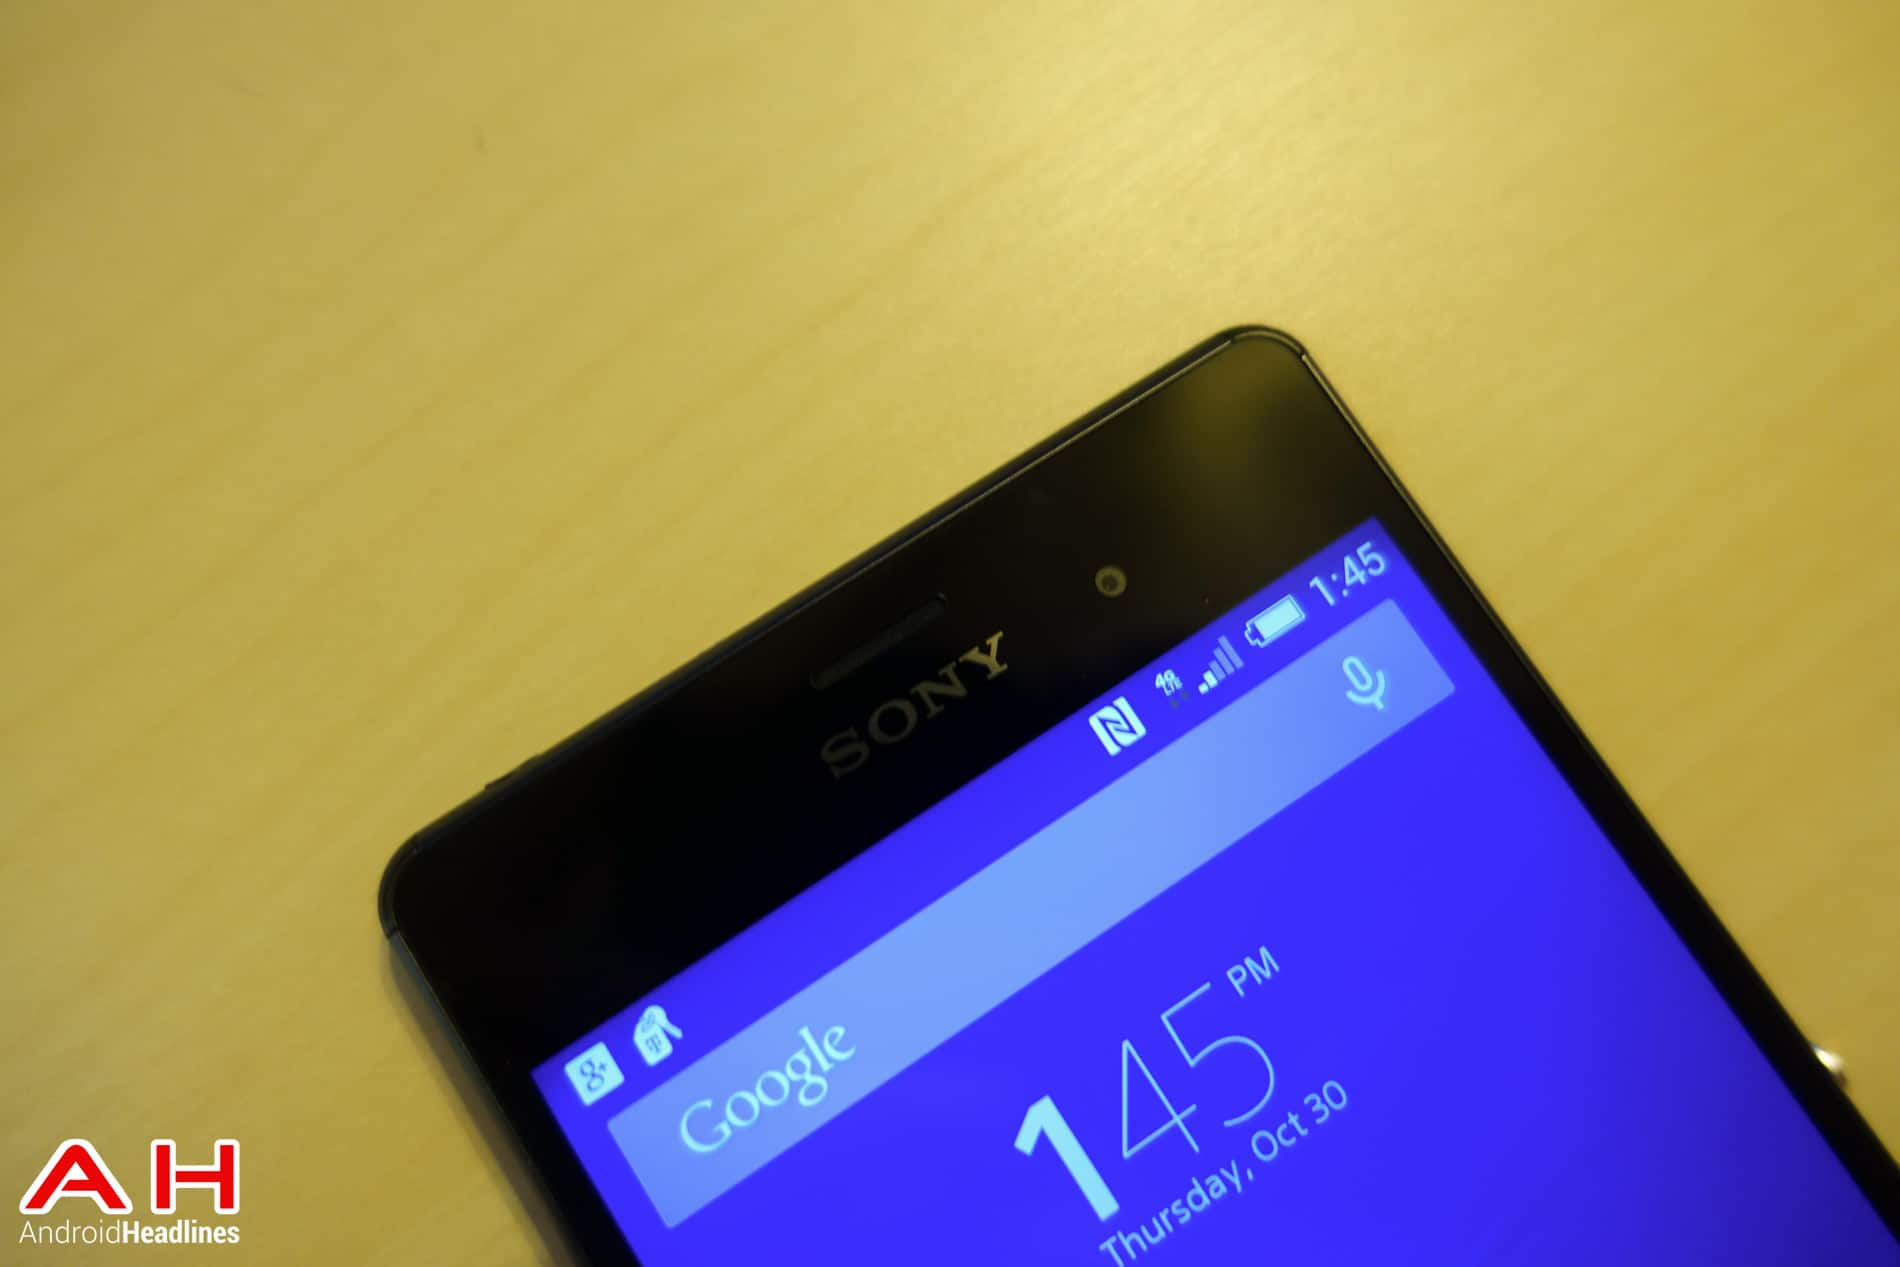 T mobile Xperia Z3 AH 6